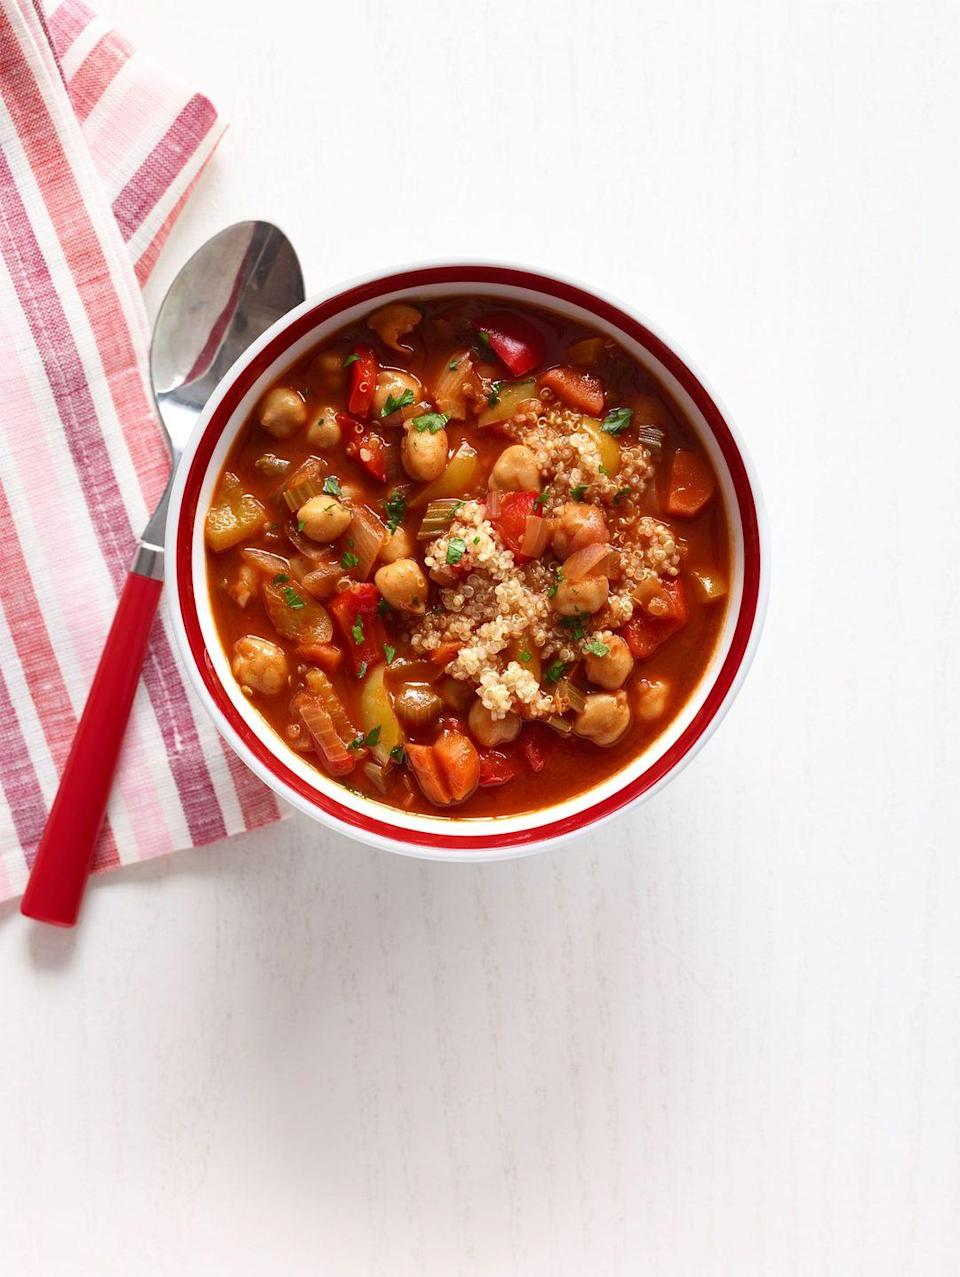 """<p>Not only does quinoa cooks fast, making this a quick meal, but it has a delicious nutty flavor and a ton of protein.</p><p><em><a href=""""http://www.womansday.com/food-recipes/food-drinks/recipes/a12561/chickpea-red-pepper-soup-quinoa-recipe-wdy0214/"""" rel=""""nofollow noopener"""" target=""""_blank"""" data-ylk=""""slk:Get the Chickpea and Red Pepper Soup with Quinoa recipe"""" class=""""link rapid-noclick-resp"""">Get the Chickpea and Red Pepper Soup with Quinoa recipe</a>. </em></p>"""